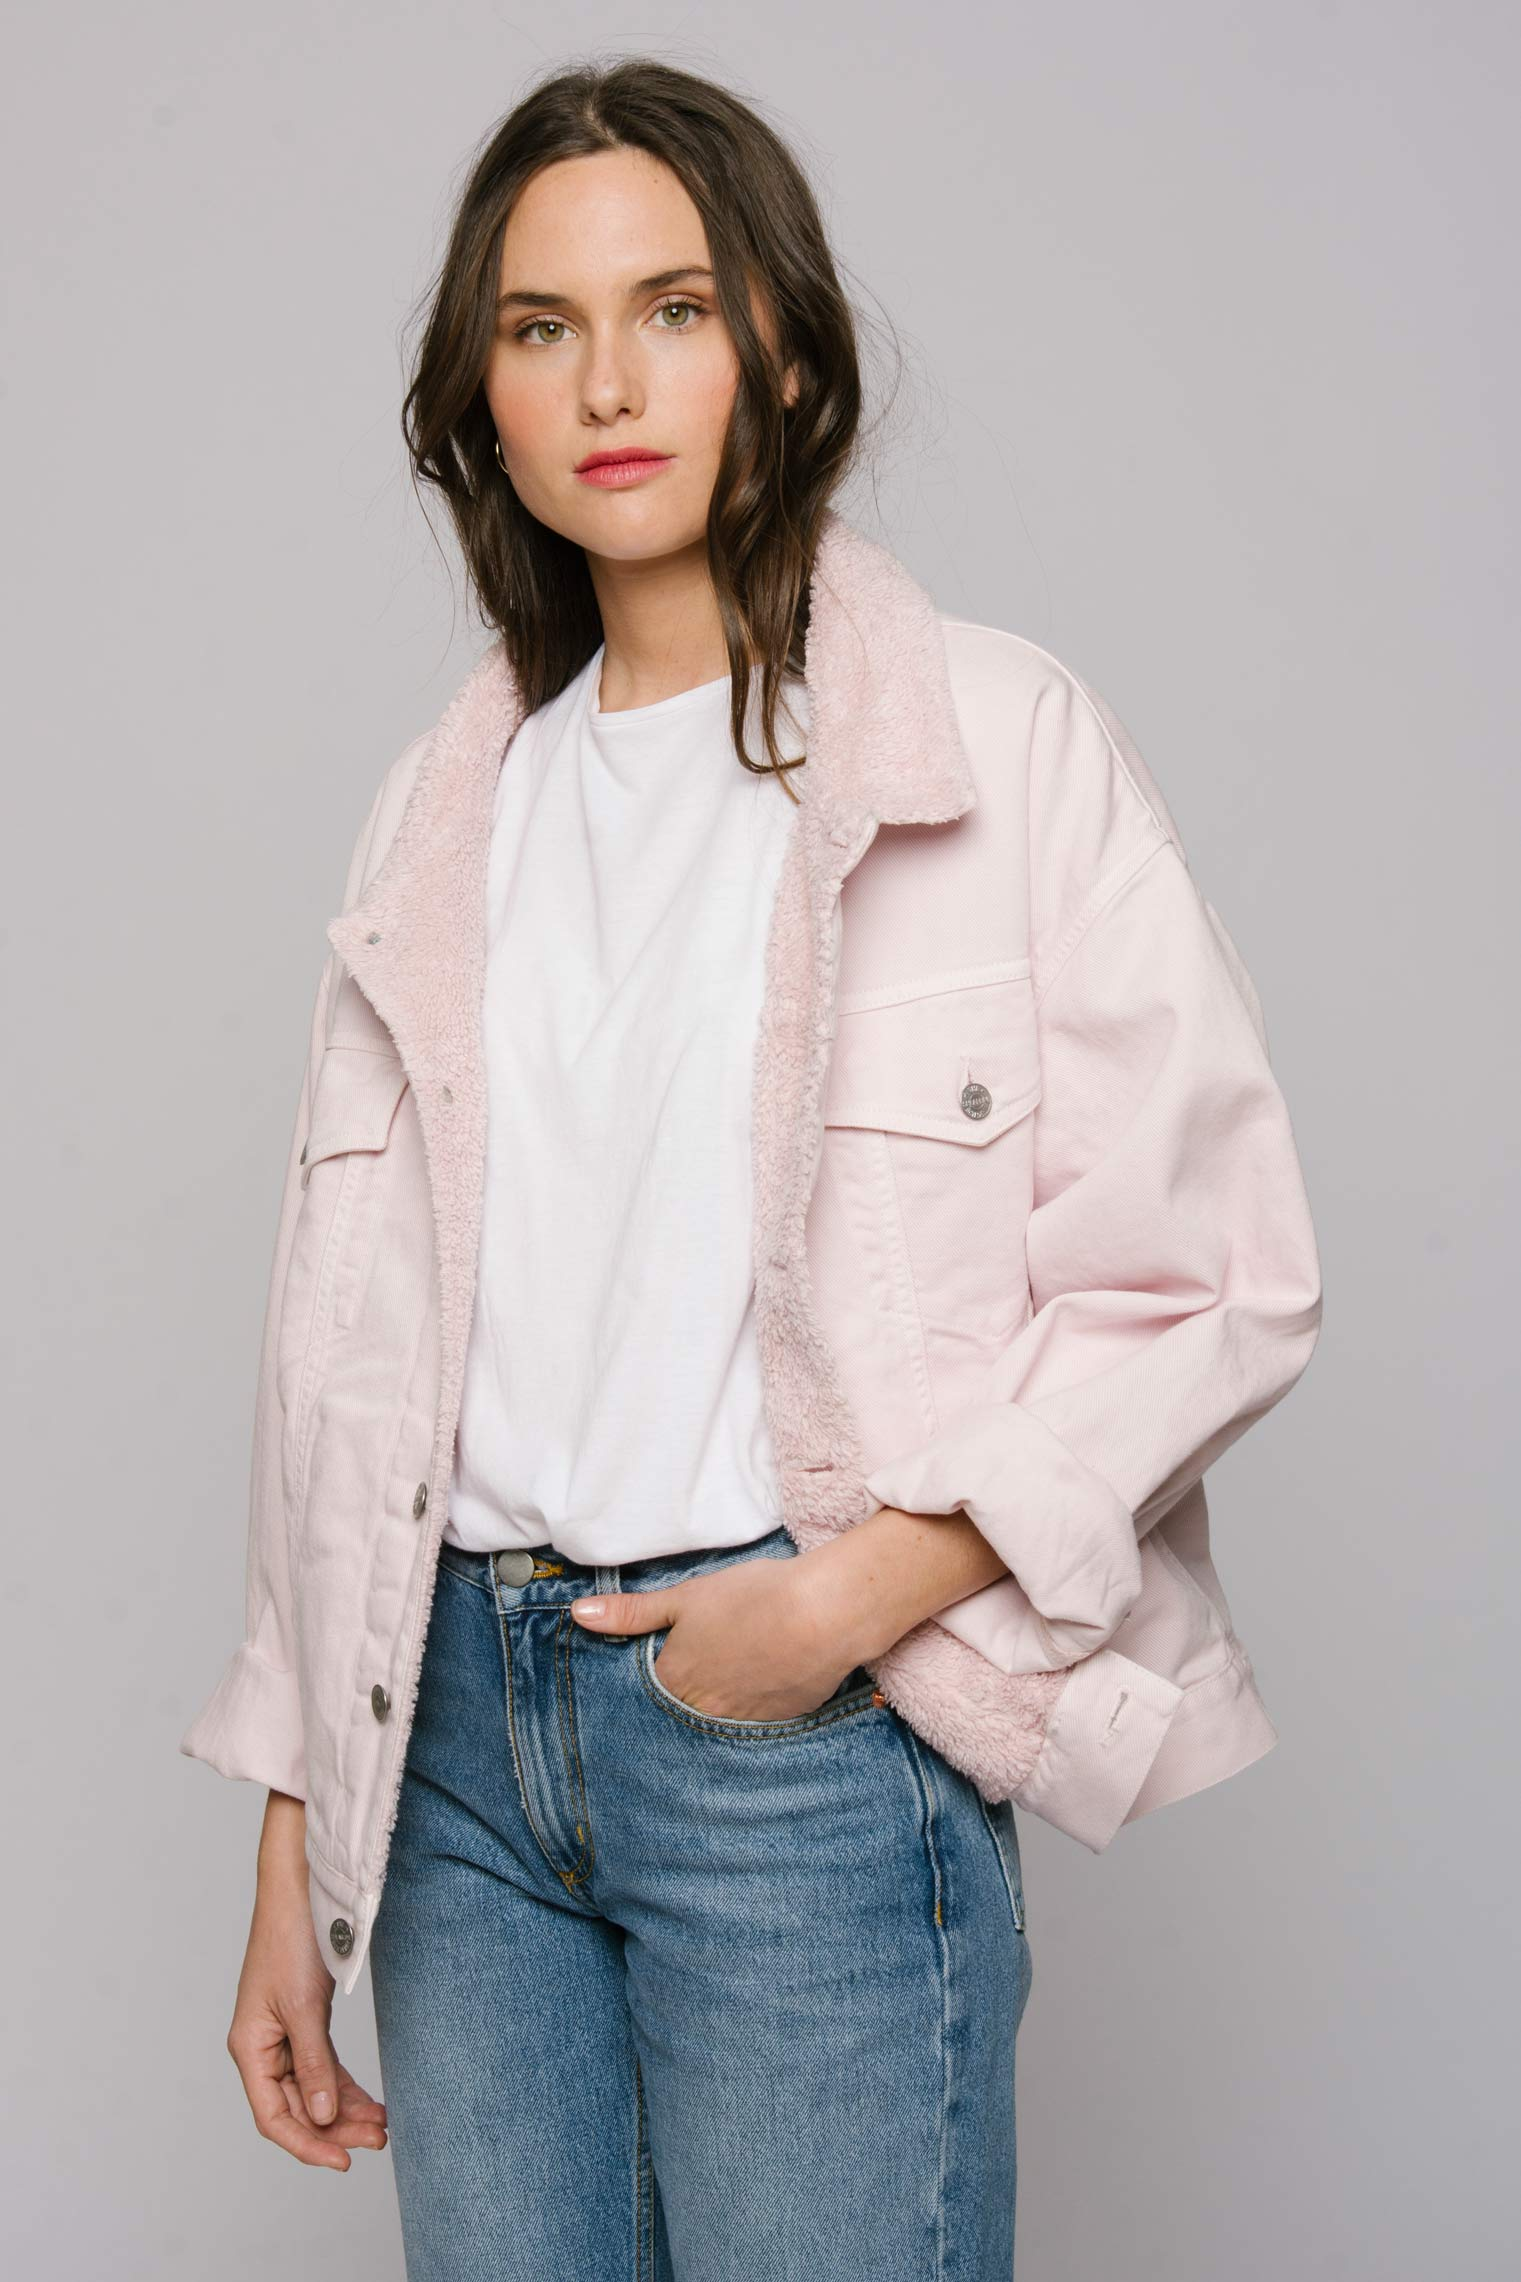 The Shearline Jacket Woman The Perfect Pink